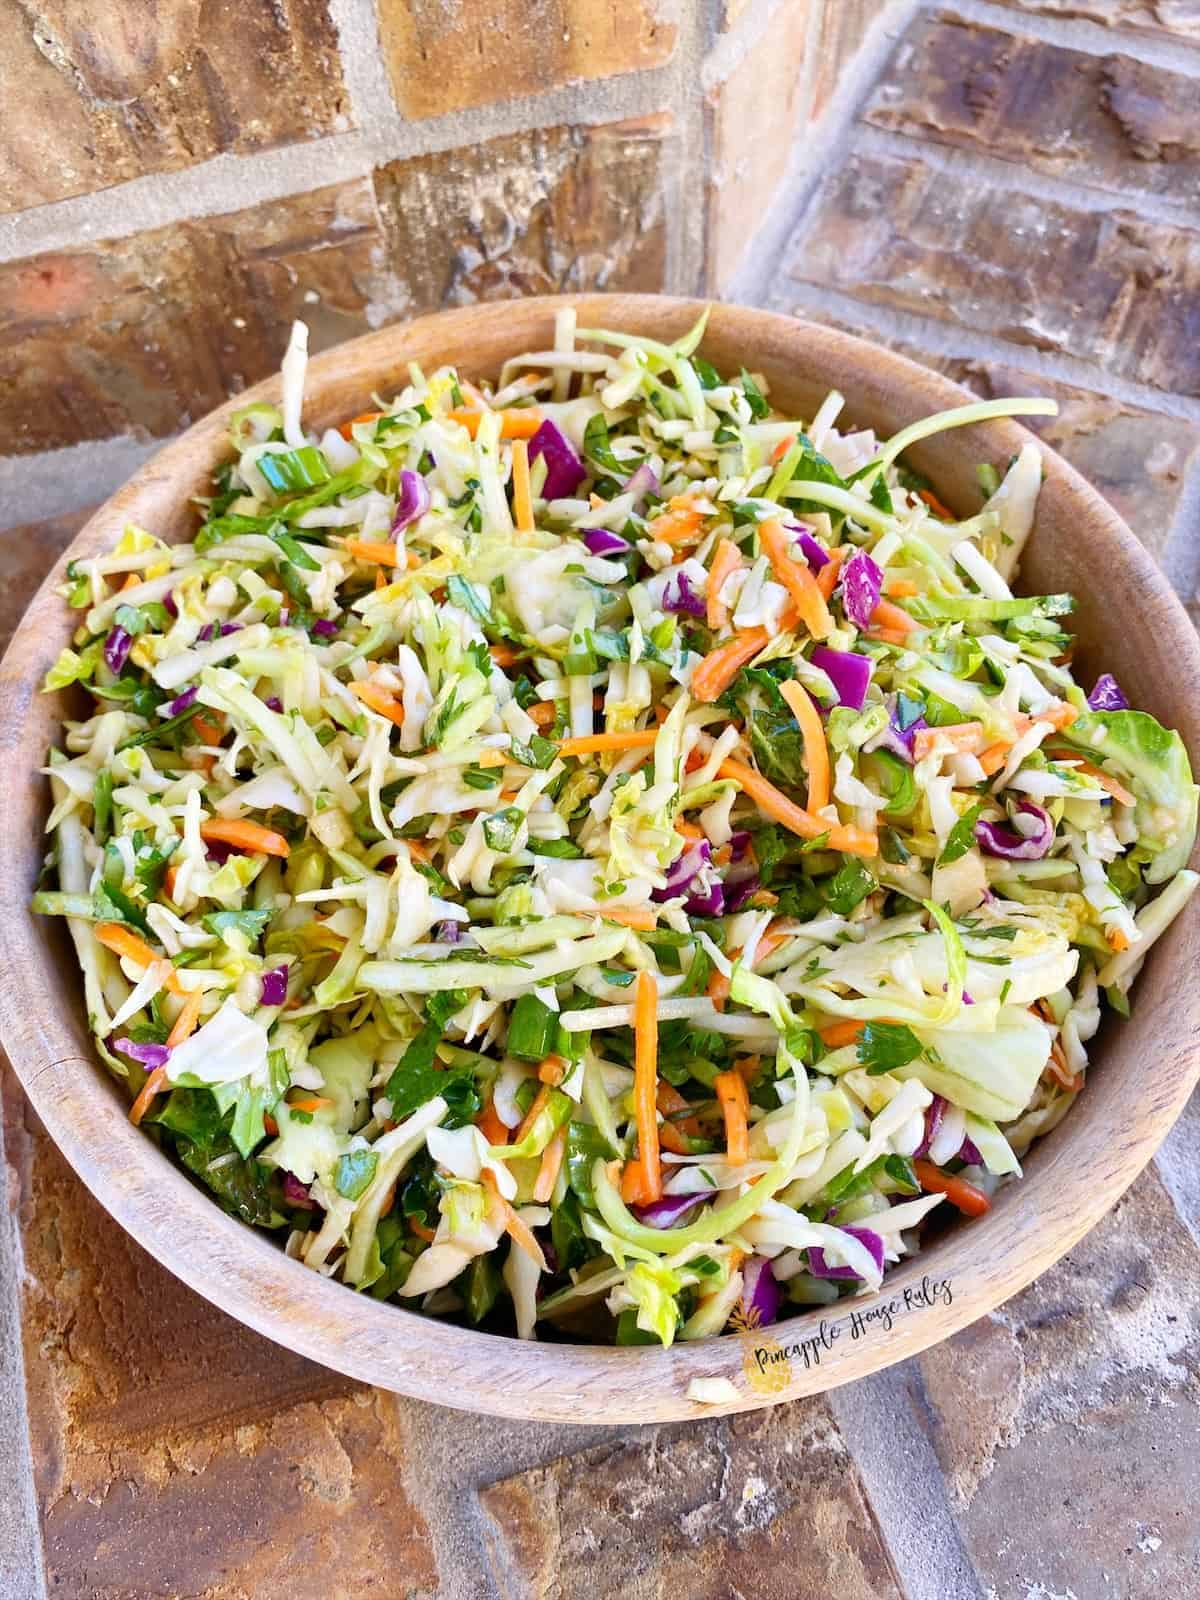 Tangy Herb Coleslaw